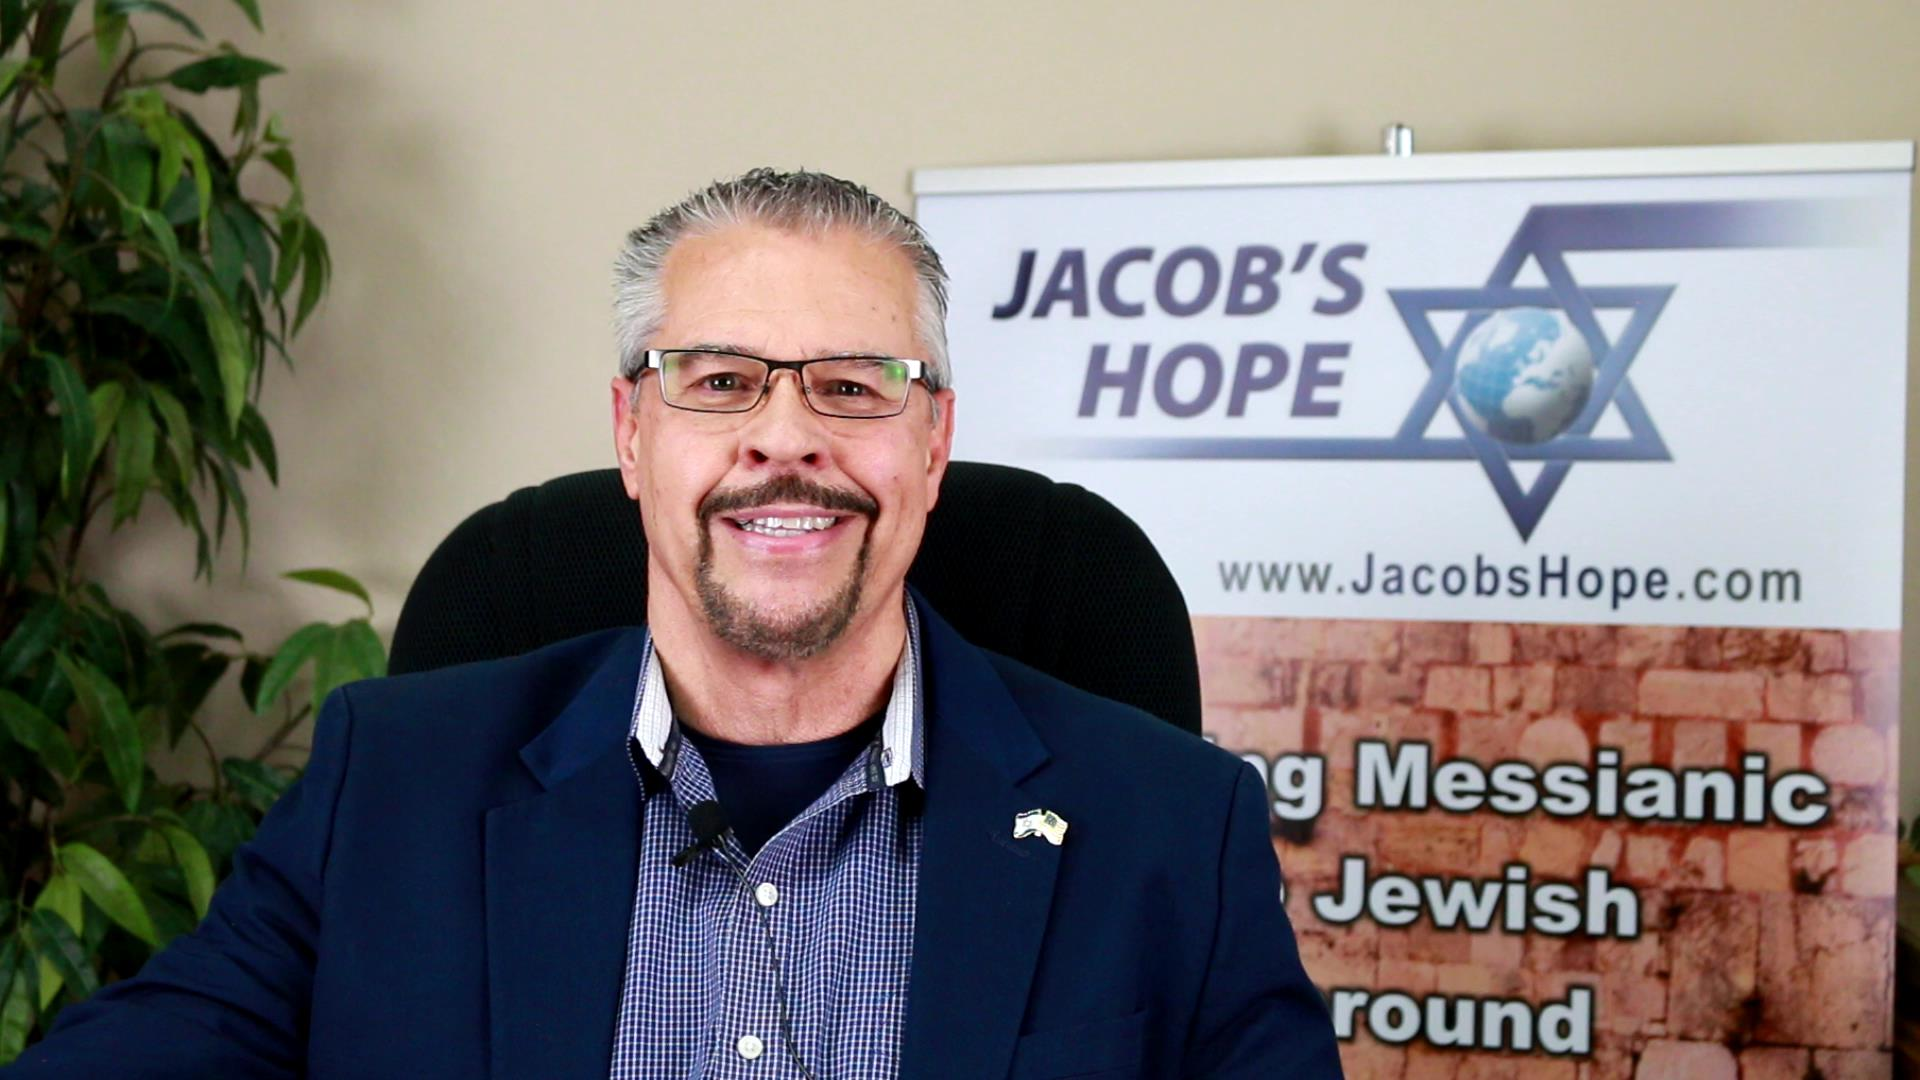 A message from the director of Jacob's Hope, Brent Johnson